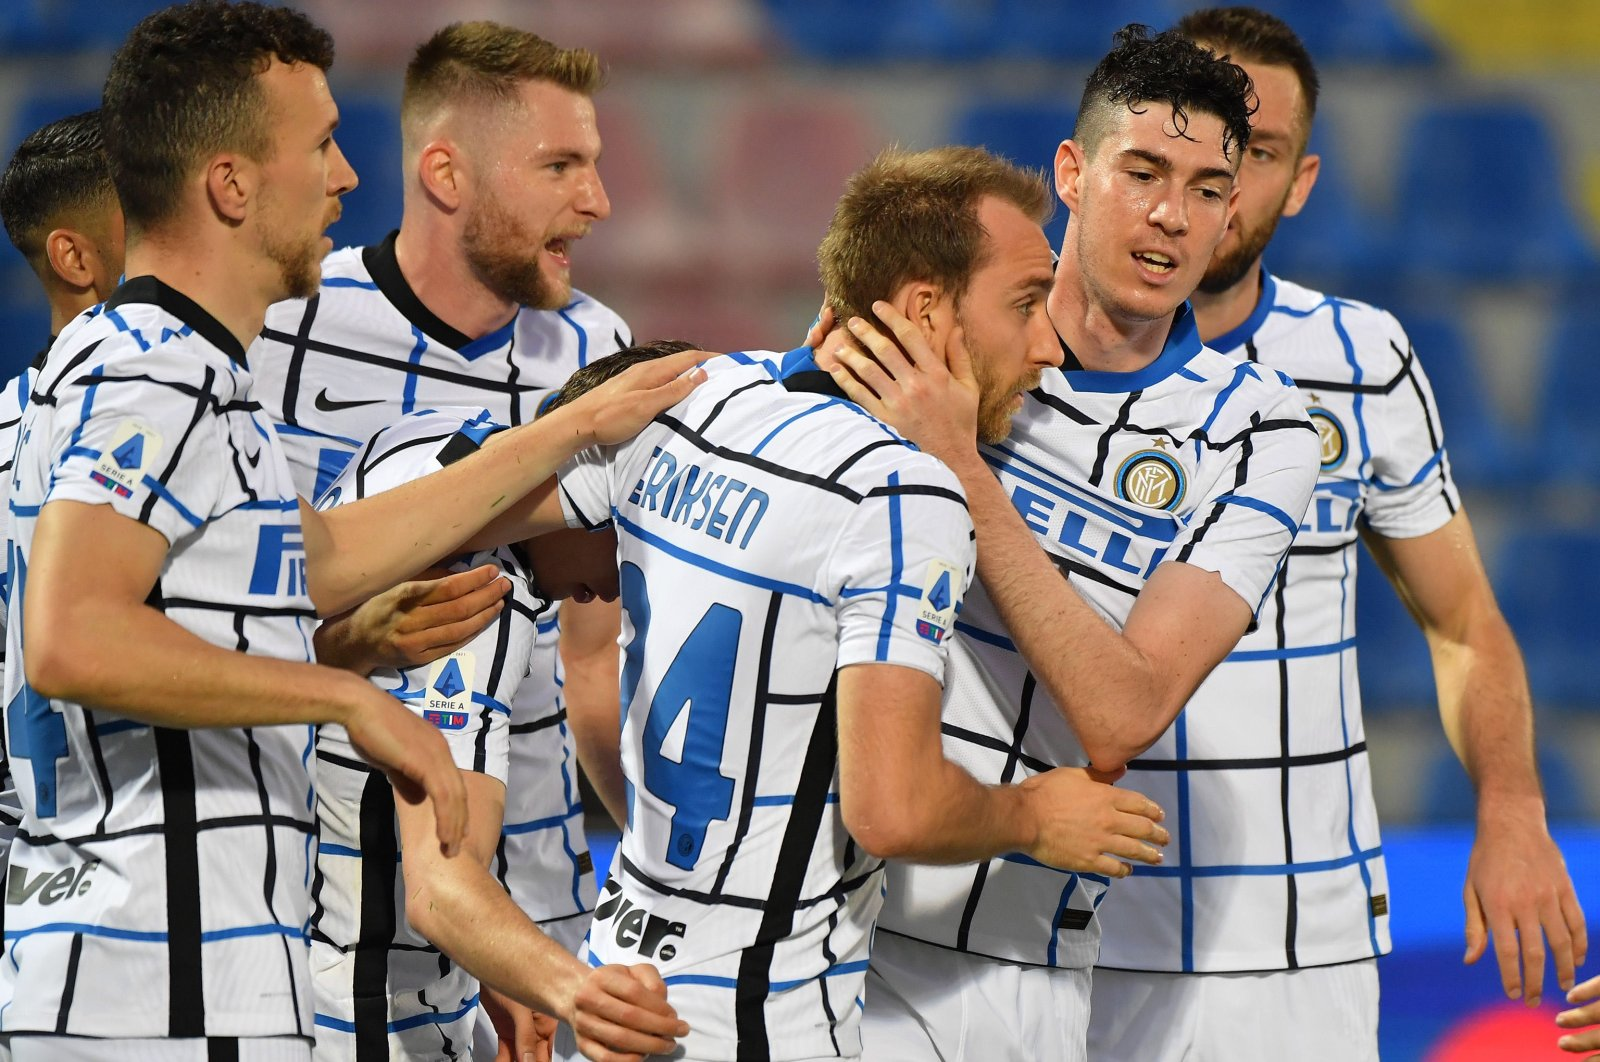 Inter Milan's Christian Eriksen (C) celebrates with teammates after scoring against FC Crotone during a Serie A match at Ezio Scida stadium in Crotone, Italy, May 1, 2021. (EPA Photo)